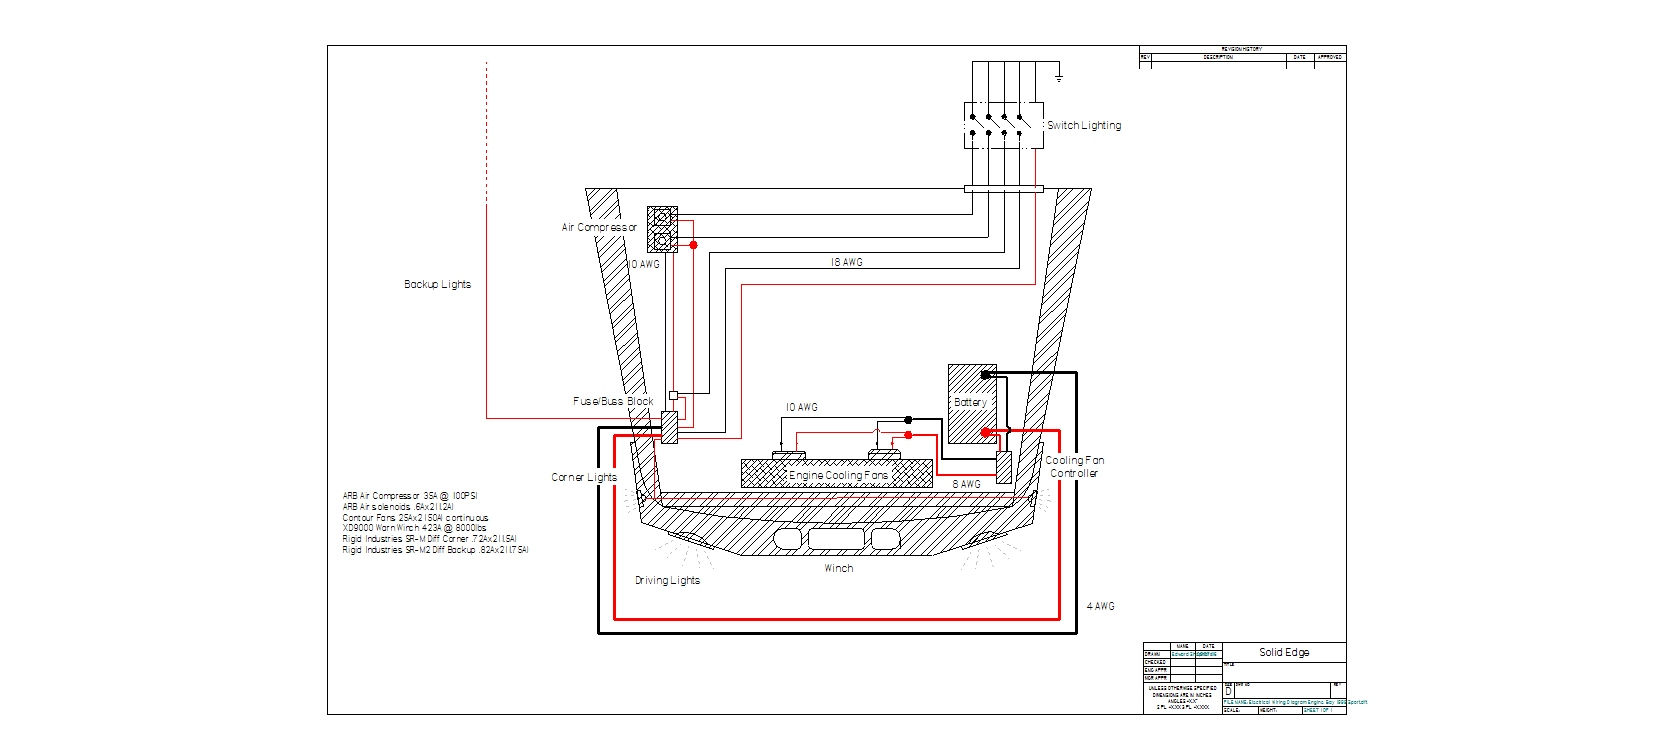 Wiring Diagram Chevy 250 Inline 6 Diagram 79 Jeep Cj5 Wiring Diagram